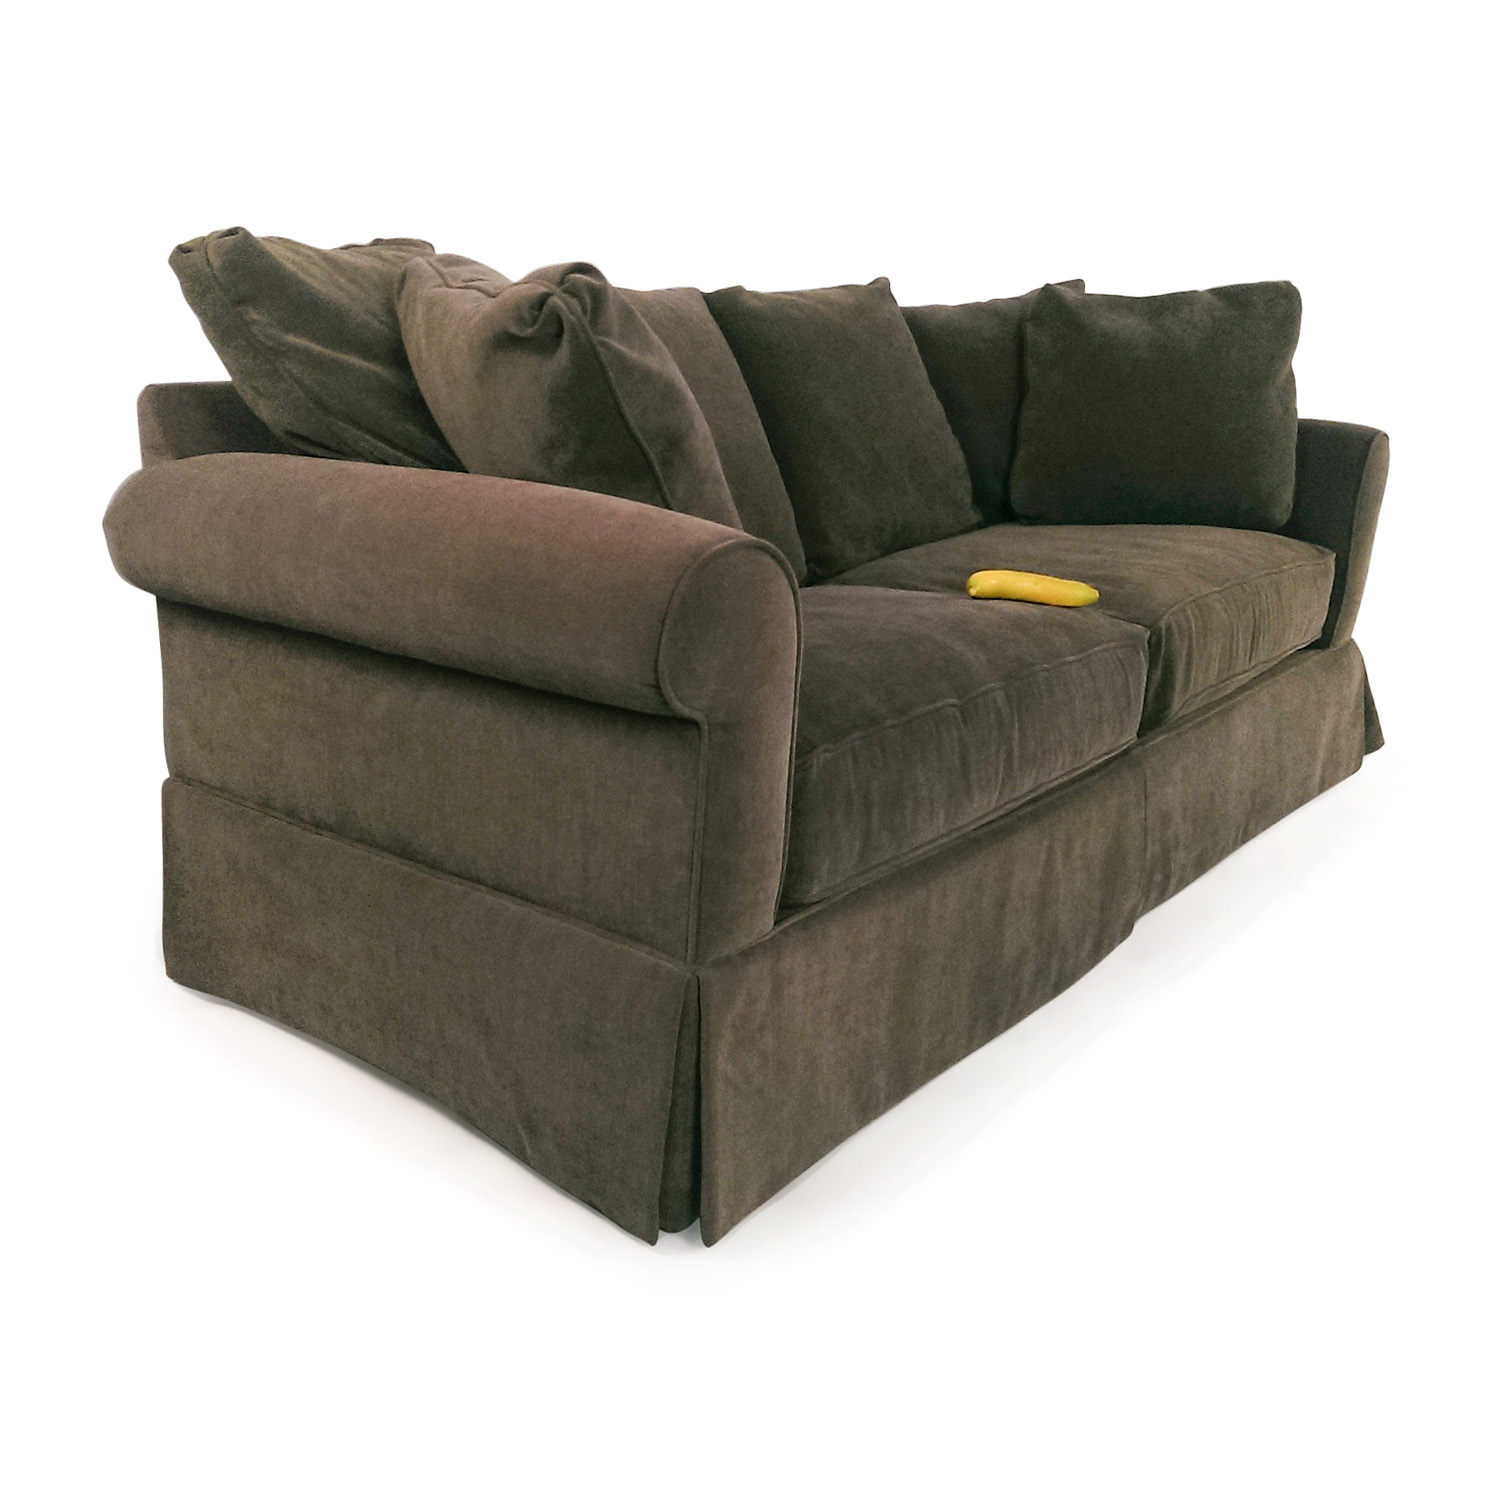 81 Off Macy S Macy S Pea Green Couch Sofas